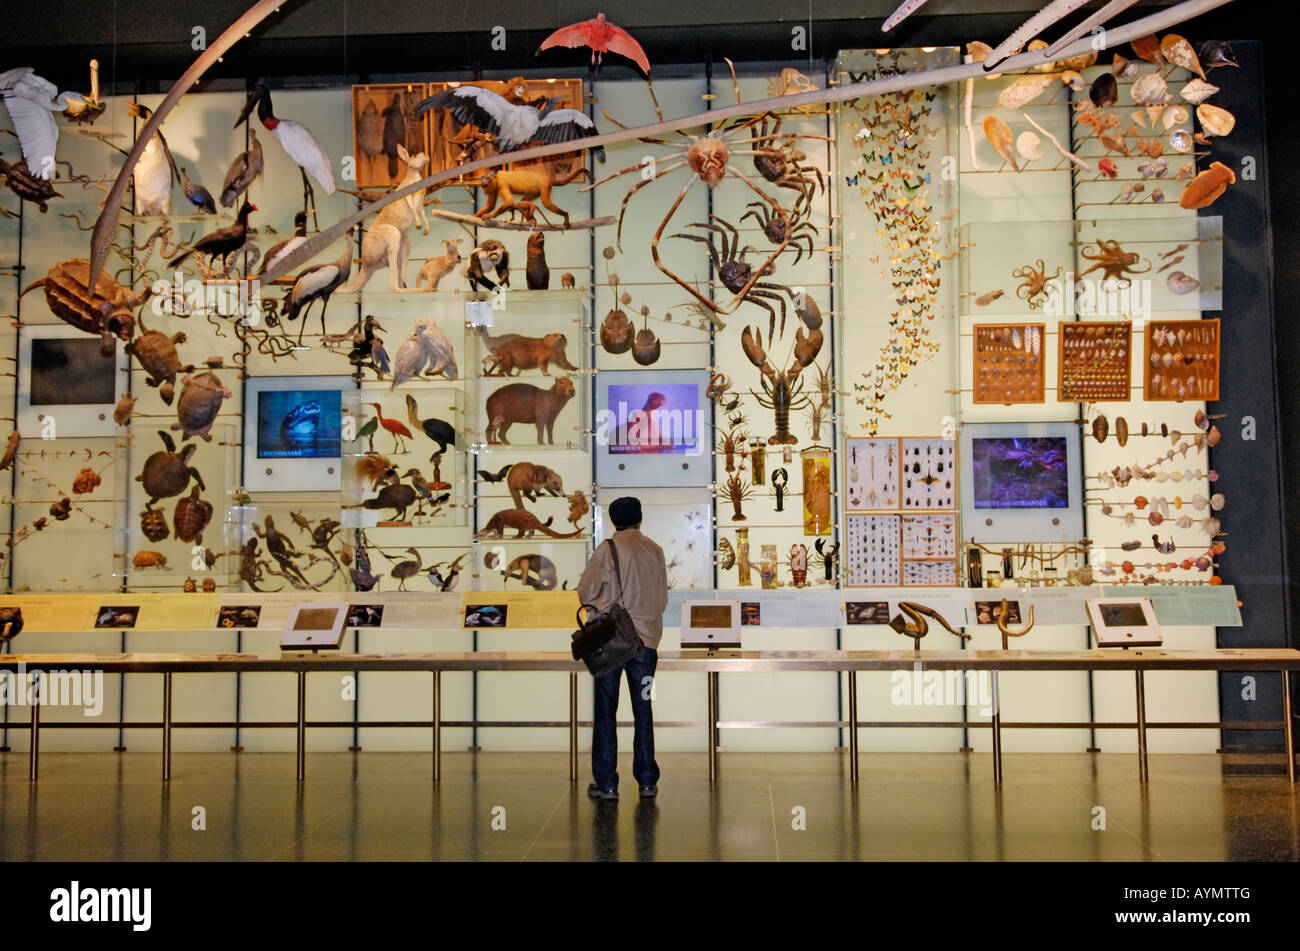 A man looks at a display in the Hall of Biodiversity American Museum of Natural History - Stock Image